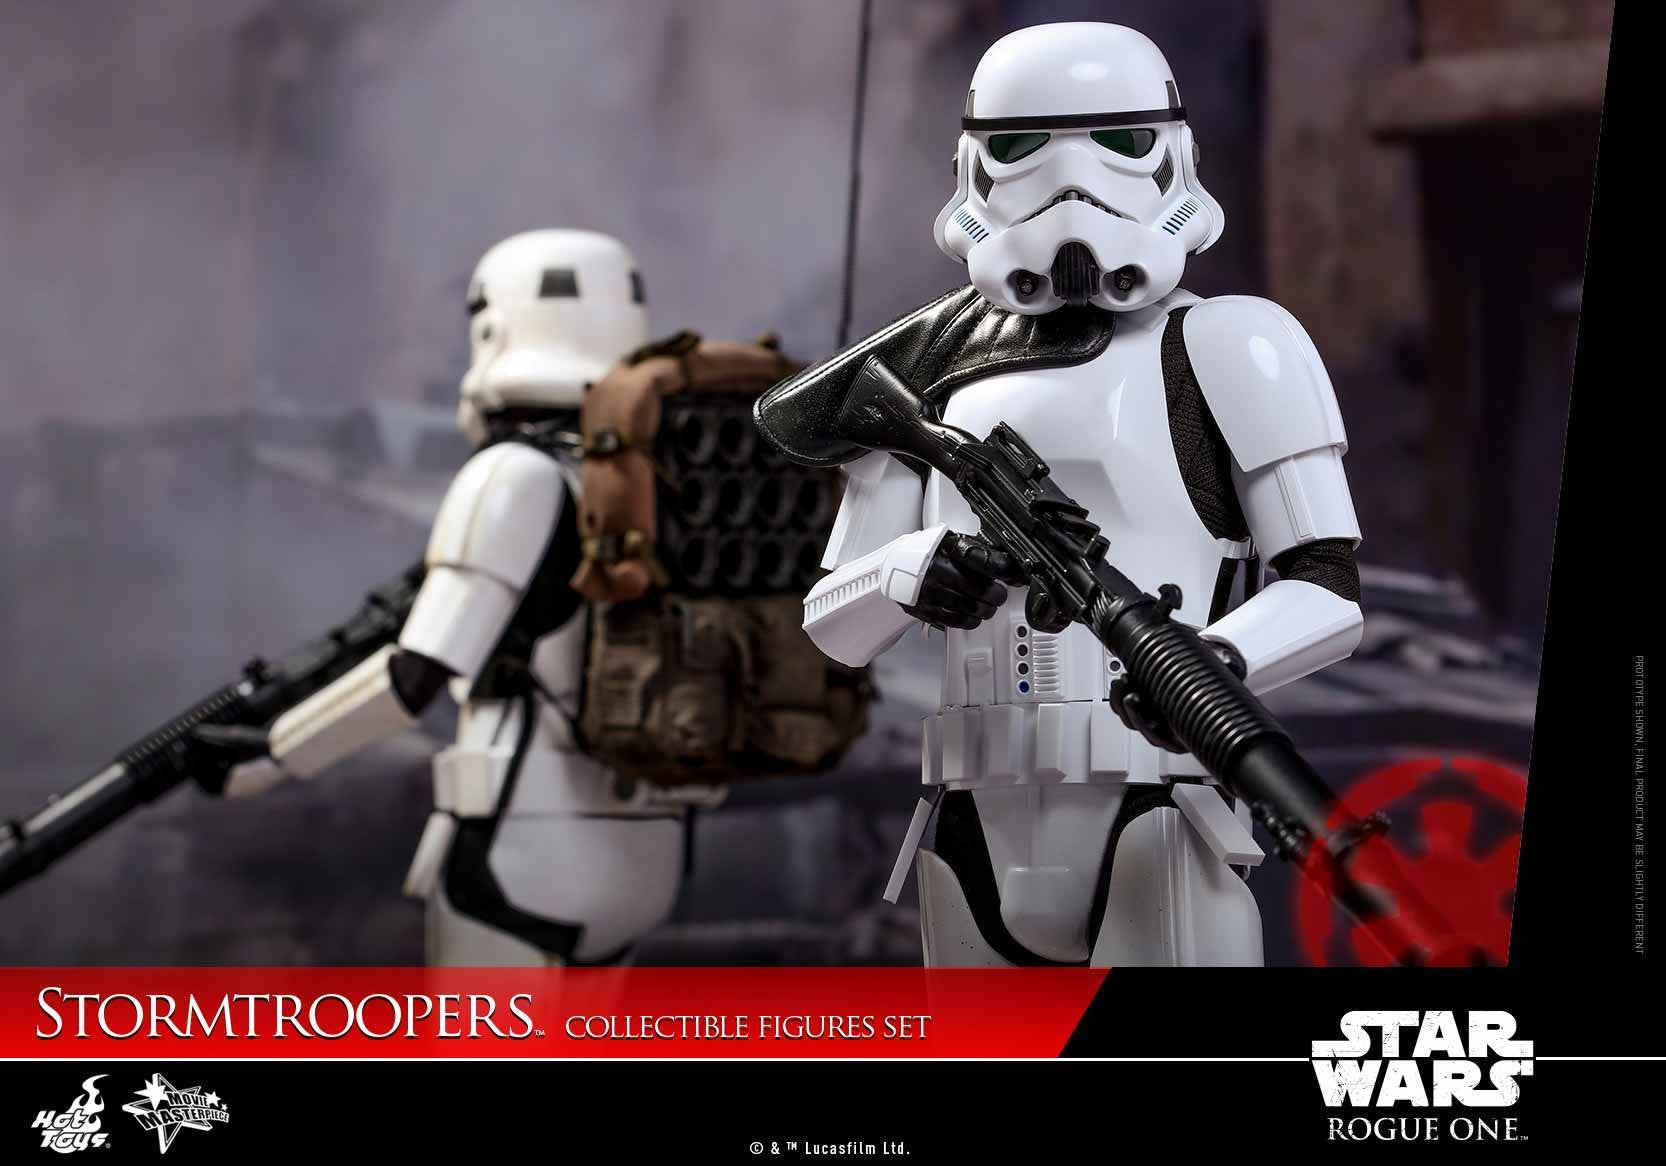 Hot Toys - MMS394 - Rogue One: A Star Wars Story - Stormtroopers Set - Marvelous Toys - 7